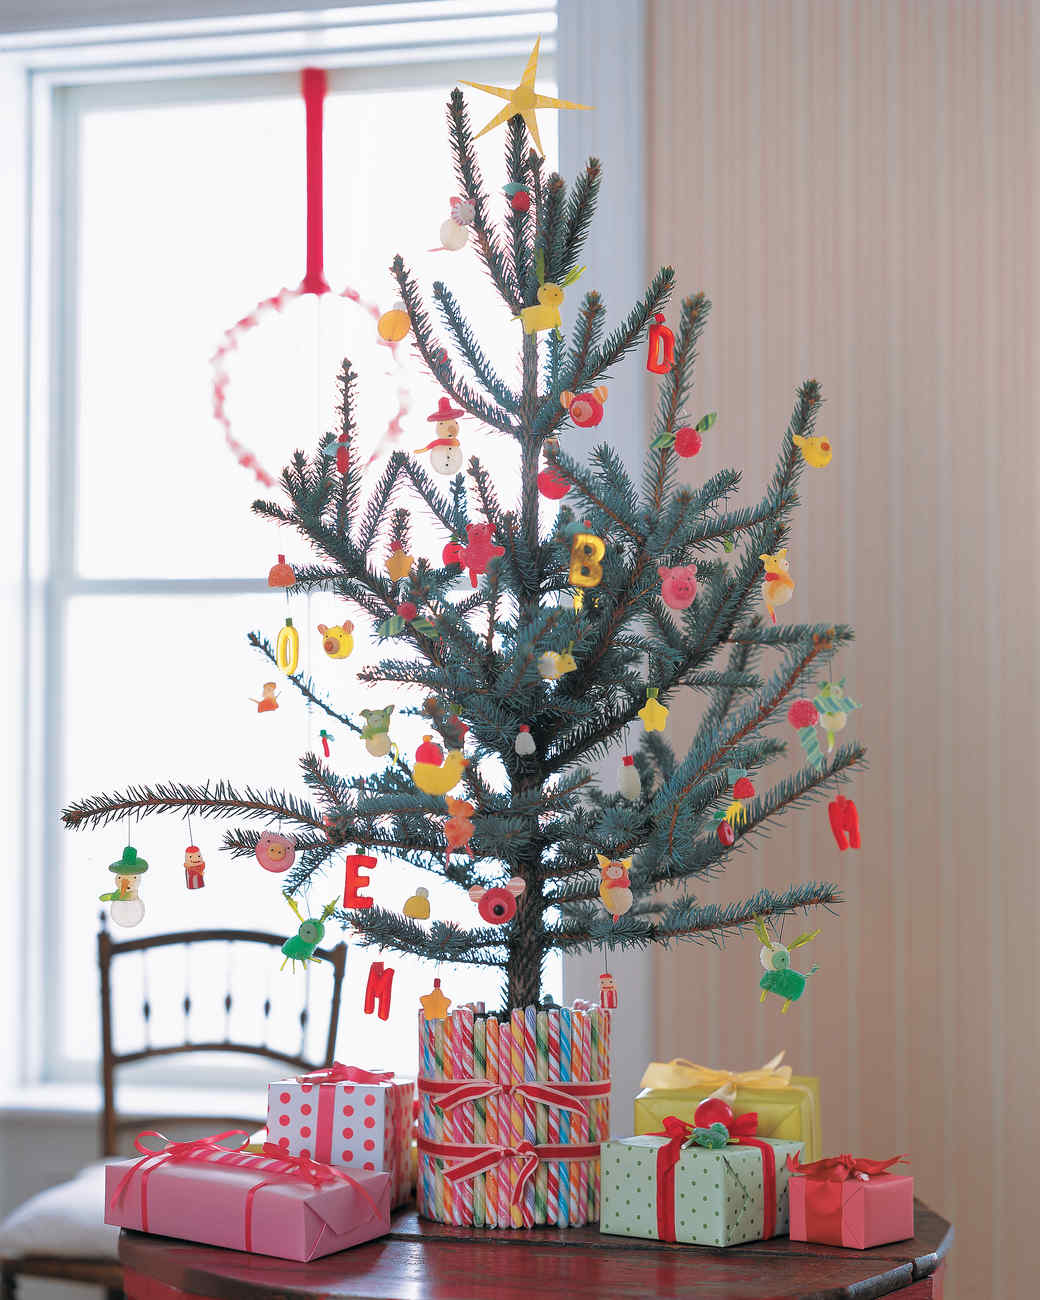 28 creative christmas tree decorating ideas martha stewart - Child Proof Christmas Tree Decorations